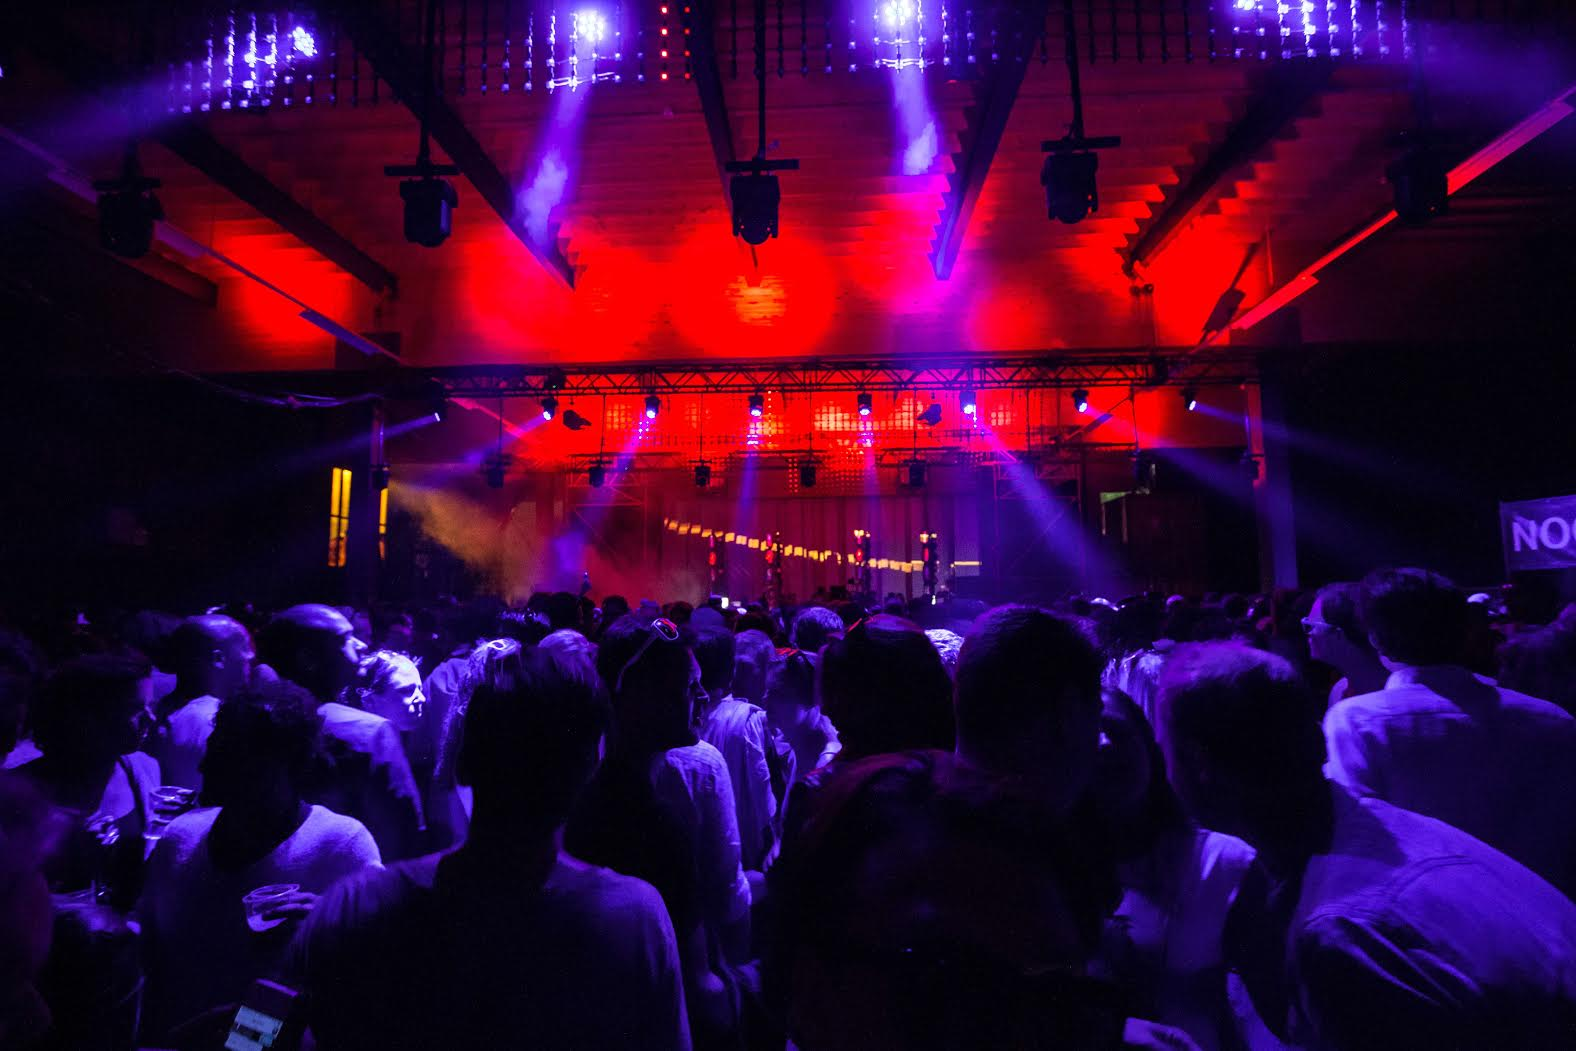 DGTL Festival announce opening night performances from Four Tet, Mount Kimbie and more